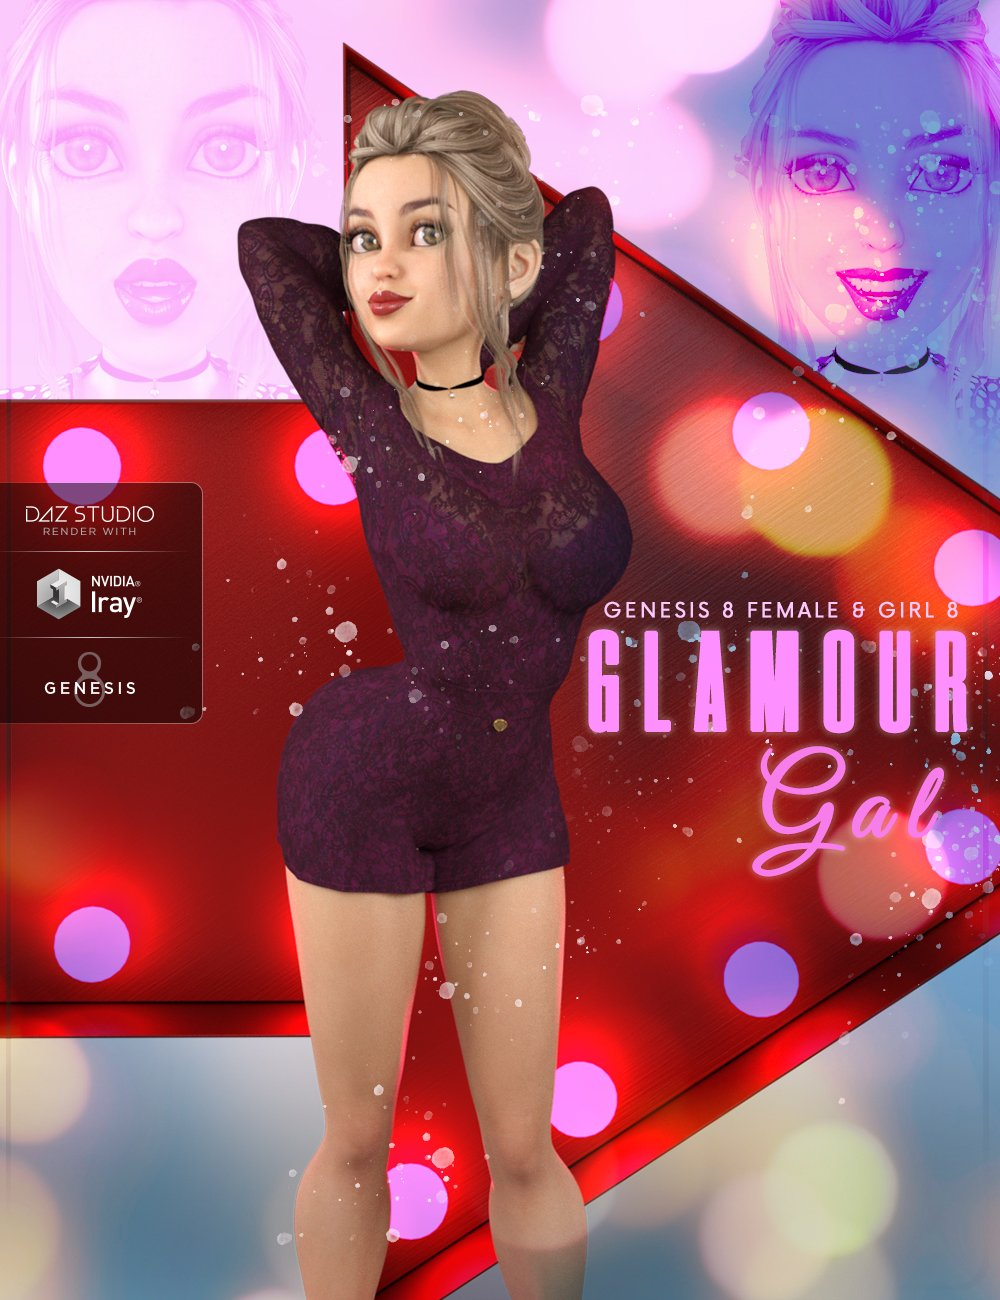 Z Glamour Gal - Poses and Expressions for The Girl 8 and Genesis 8 Female by: Zeddicuss, 3D Models by Daz 3D